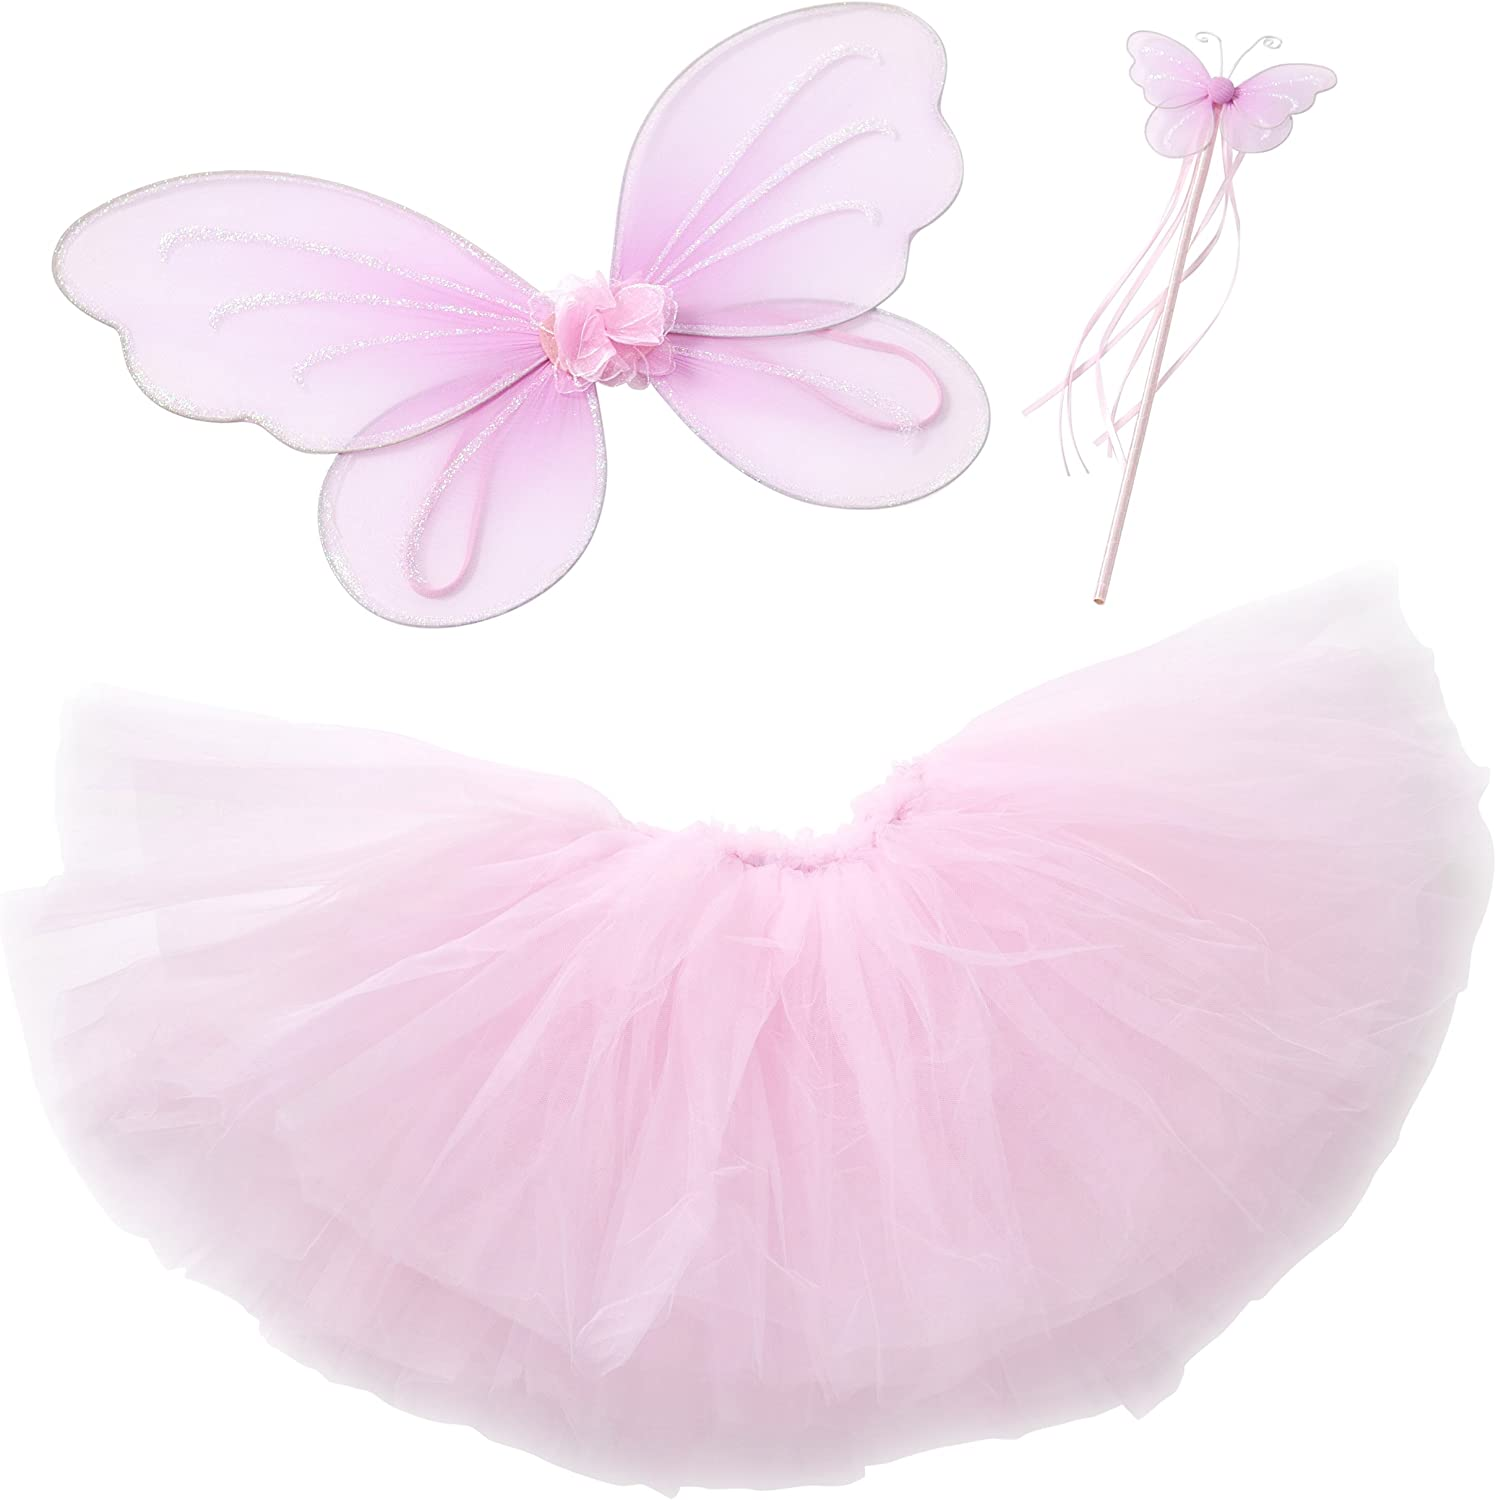 Fairy Princess Tutu Costume Set for Girls Dress up and Ballet Dance